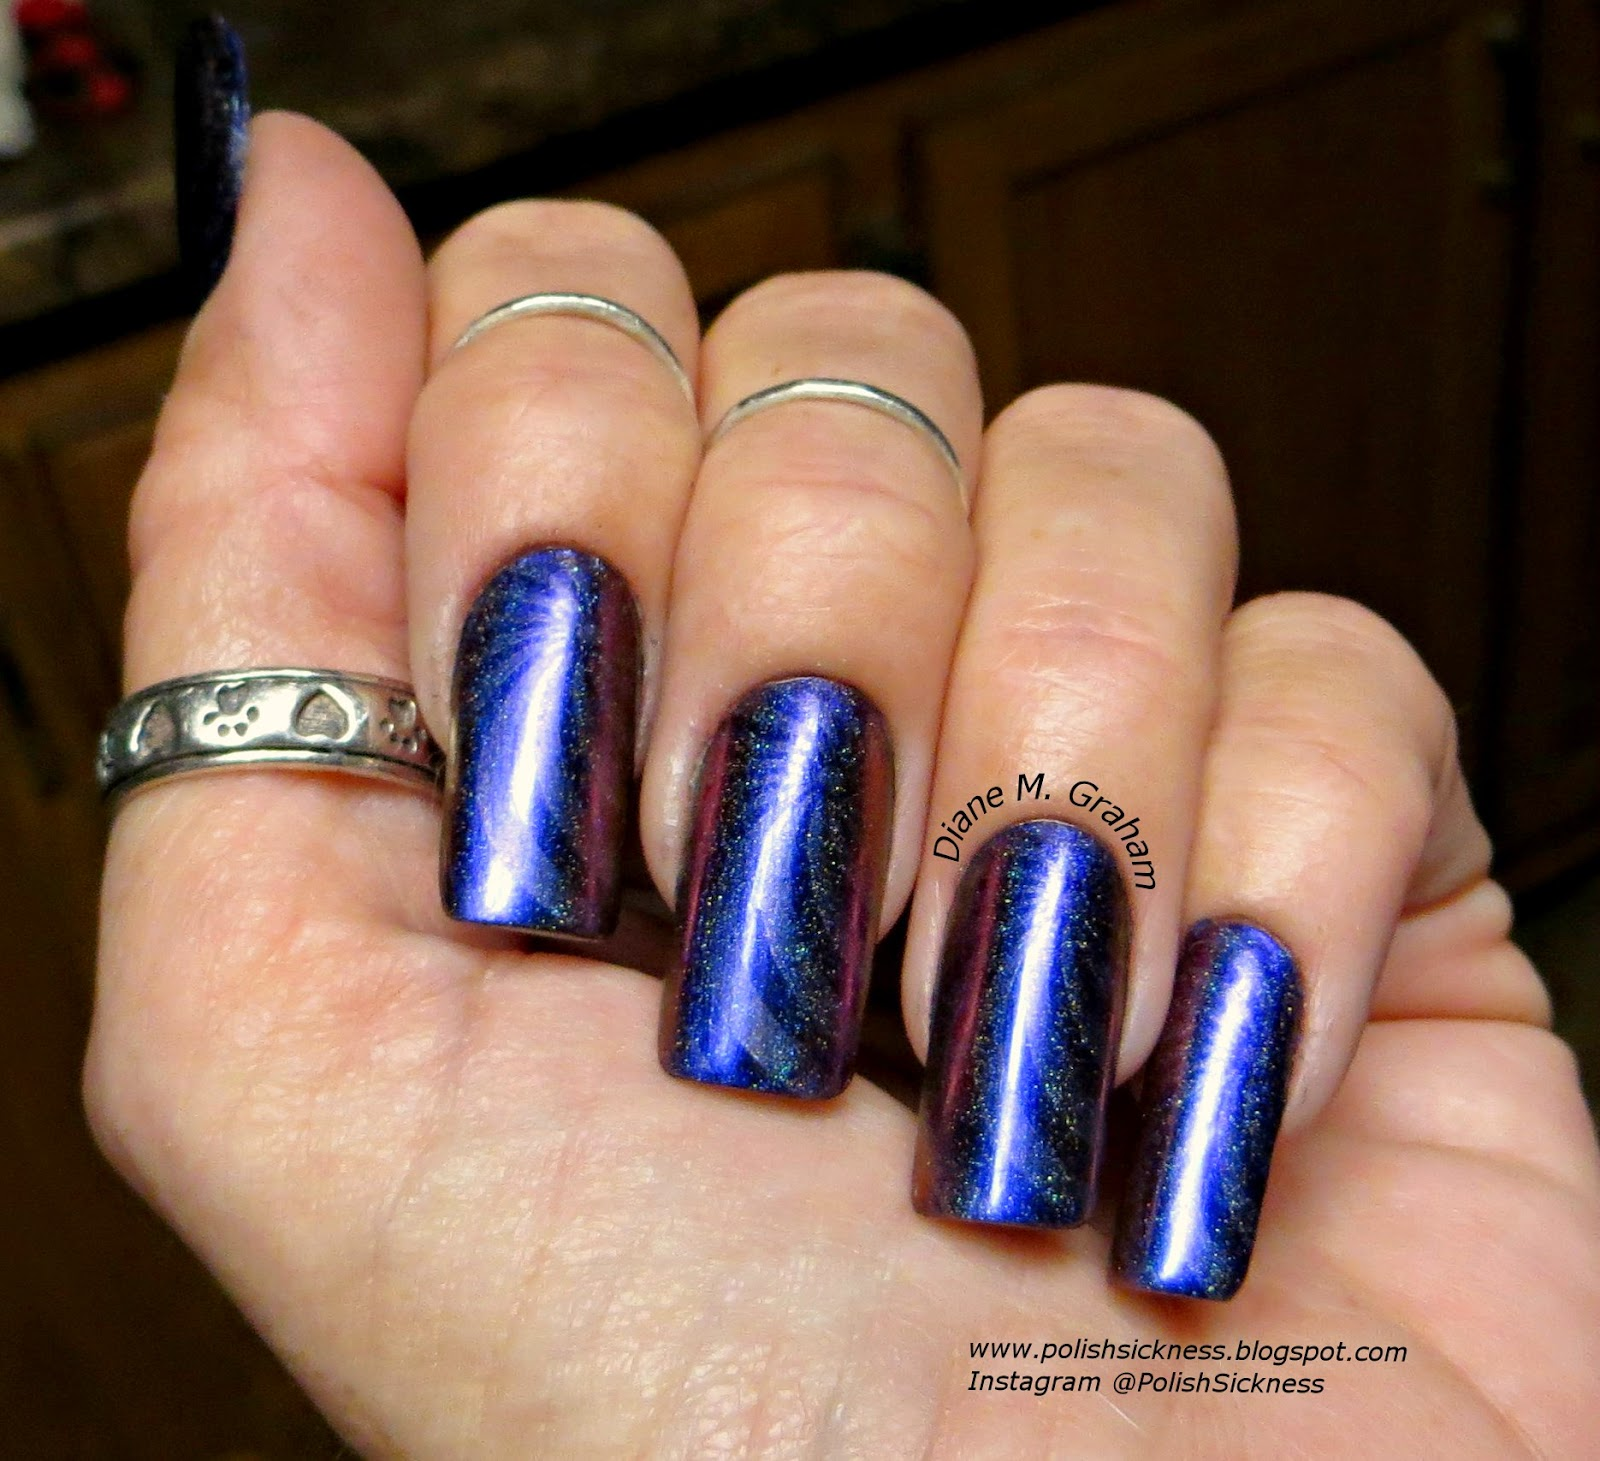 ILNP Cygnus Loop Holo, OPI DS Sapphire, Ali Express 12-51 holo stamp